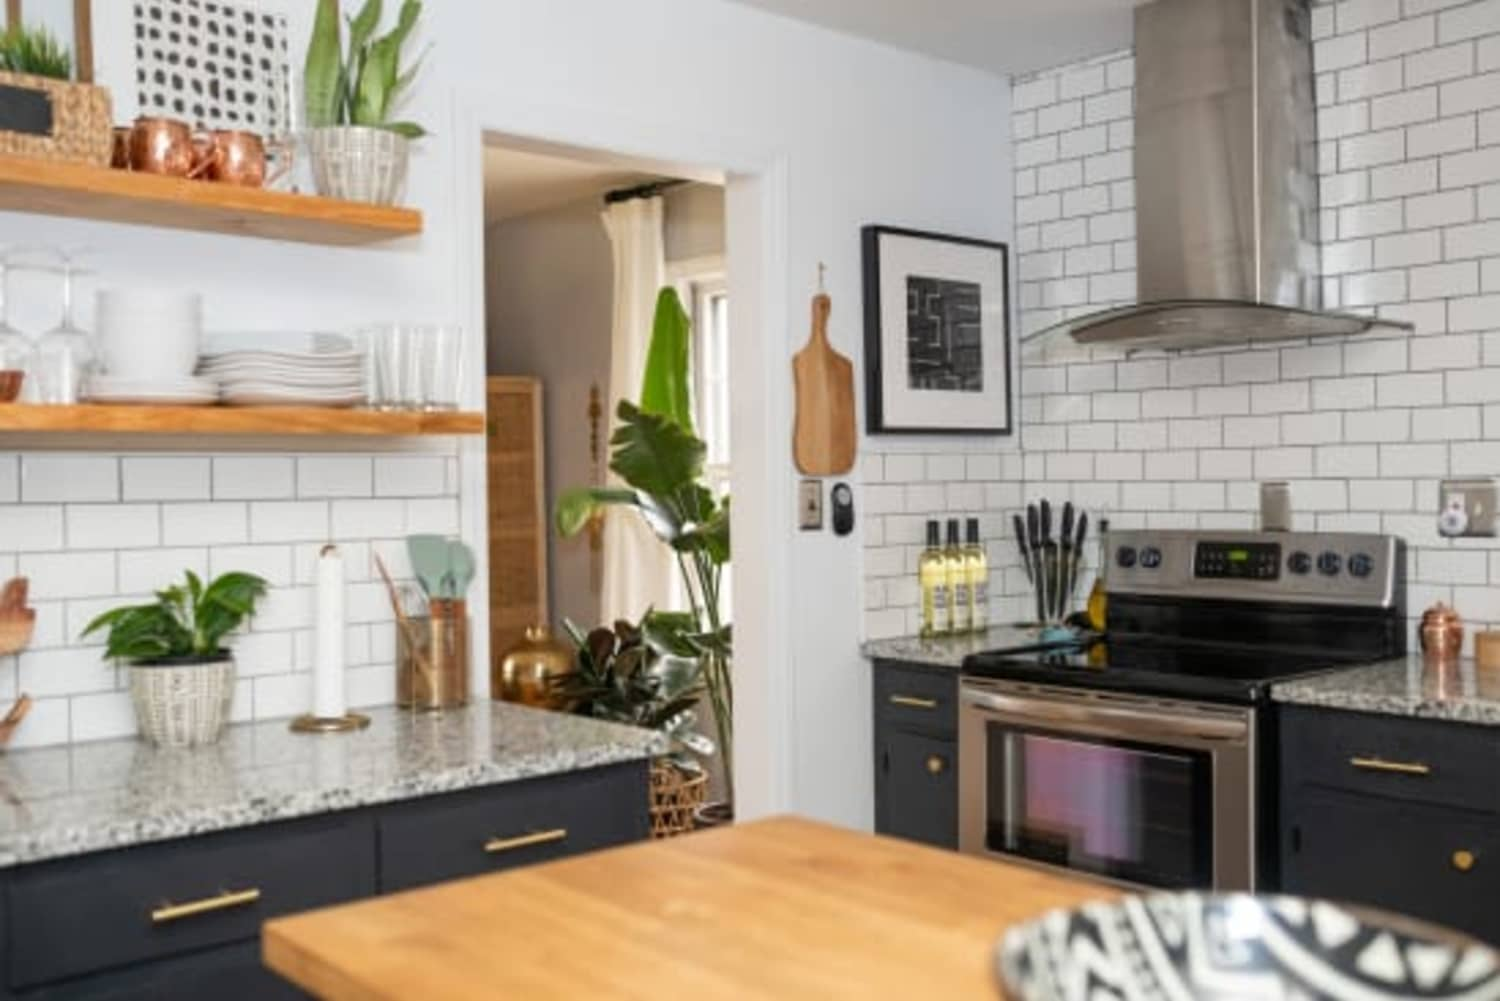 Prime Day Is Here and These Are the Best Kitchen Deals to Shop ASAP